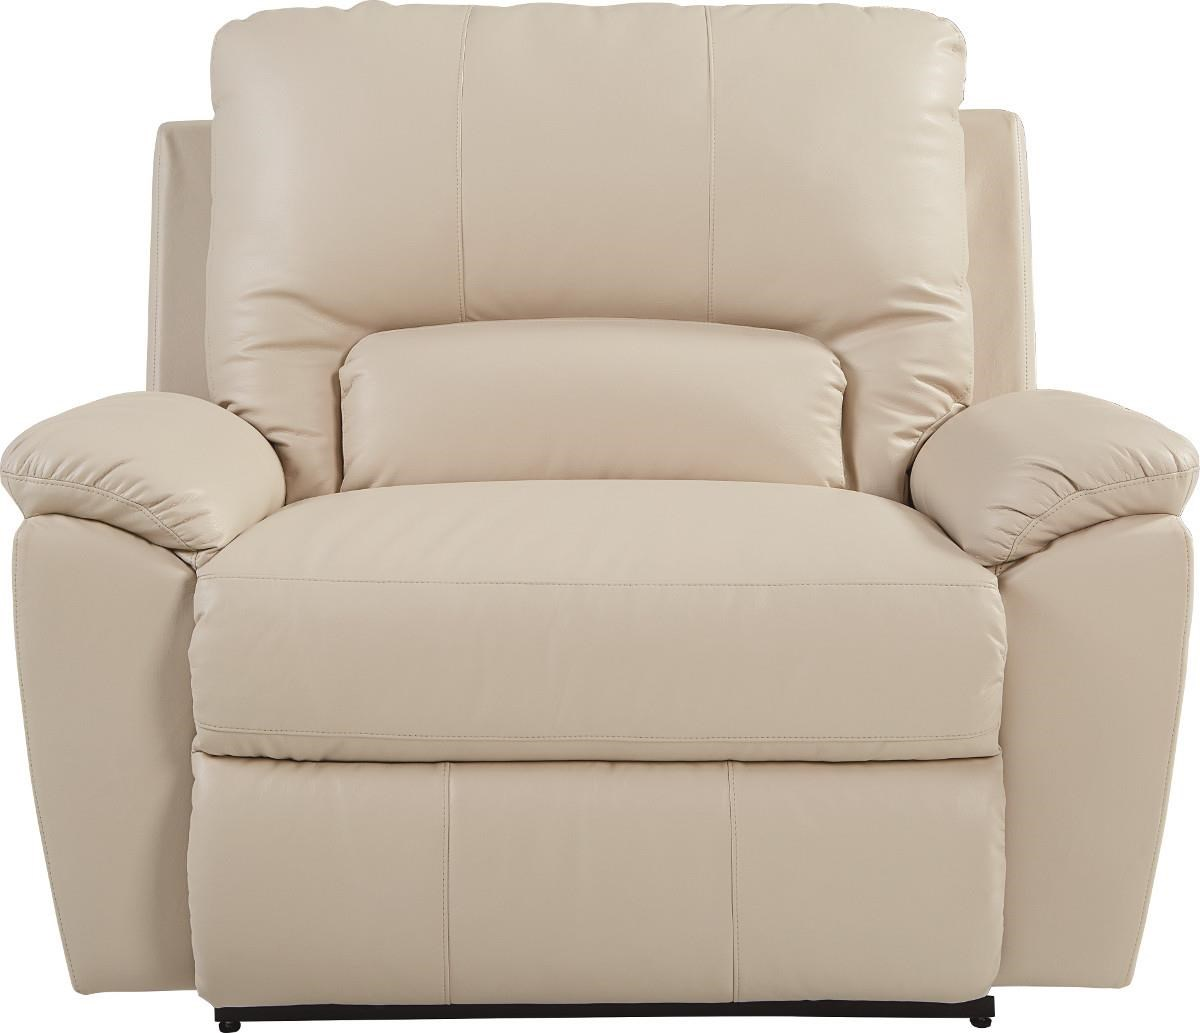 chair and a half recliner black lazboy chargerlaztime recliner charger laztime chair and half morris home